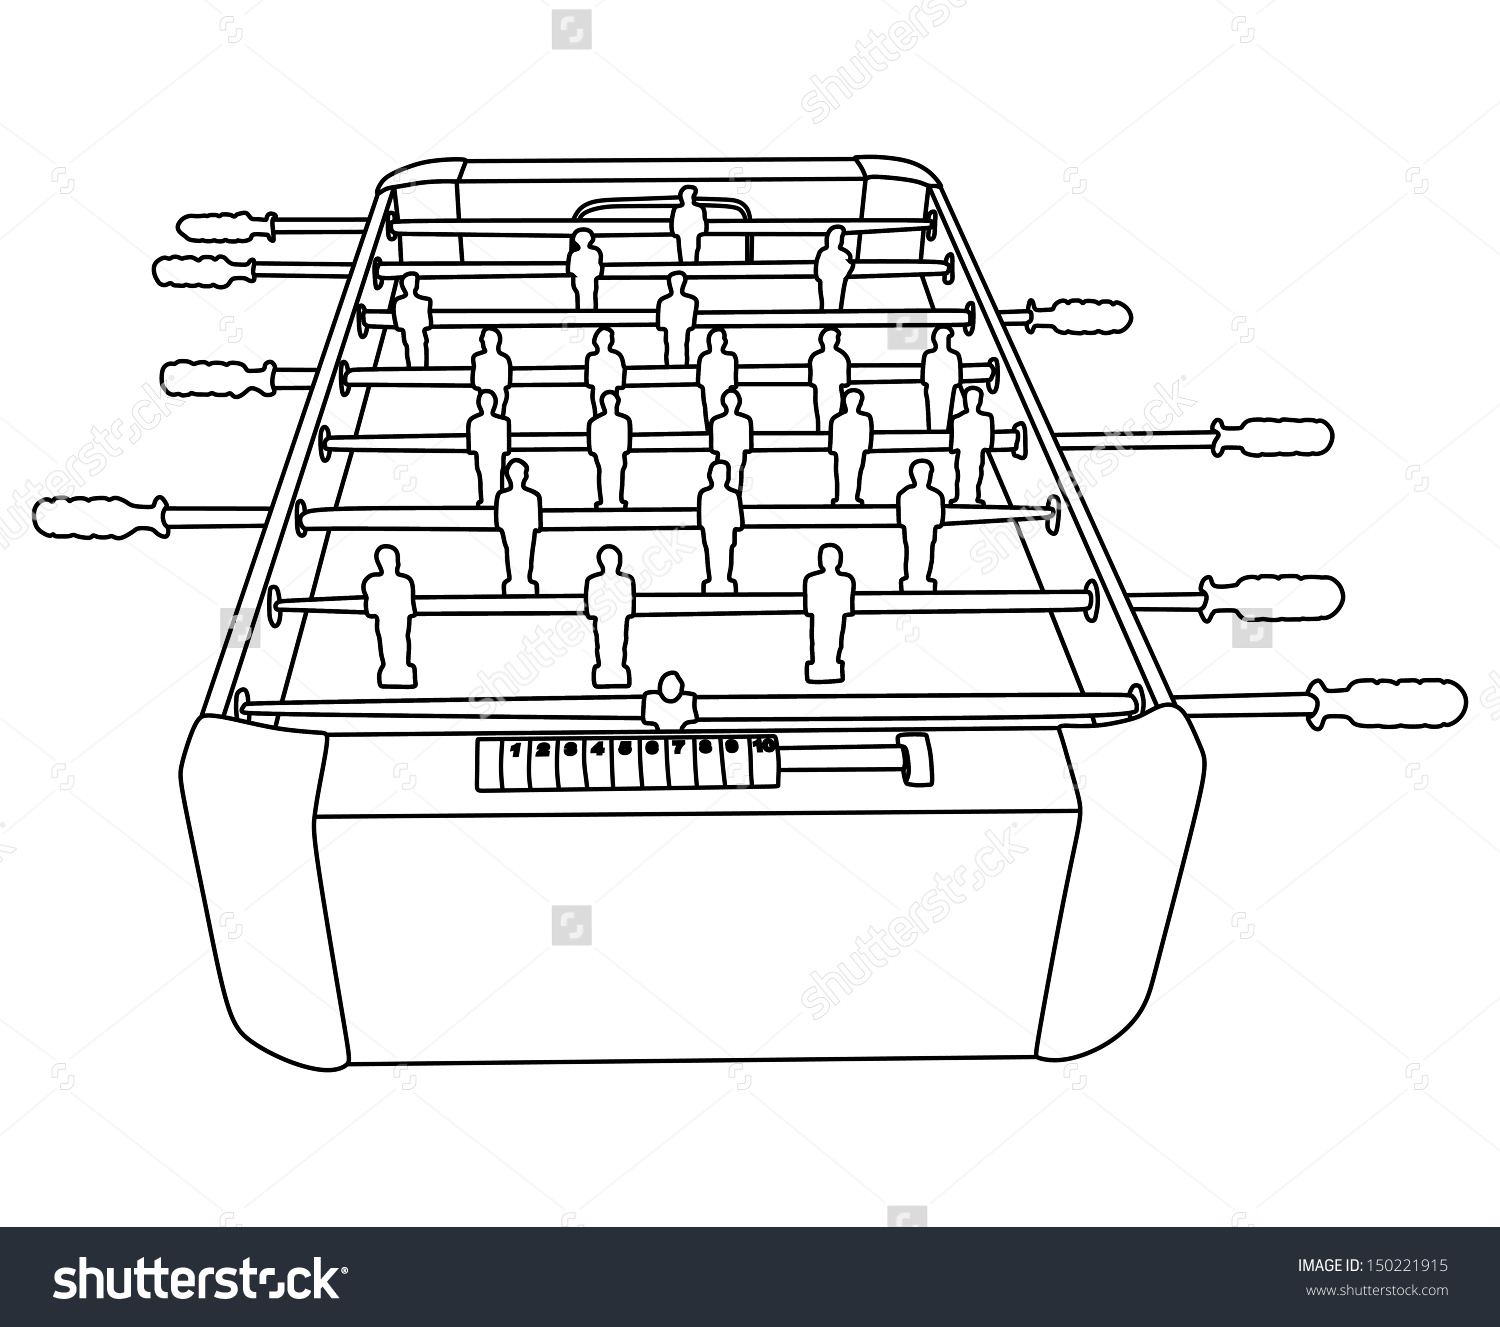 Foosball Soccer Table Game Vector Isolated Stock Vector 150221915.